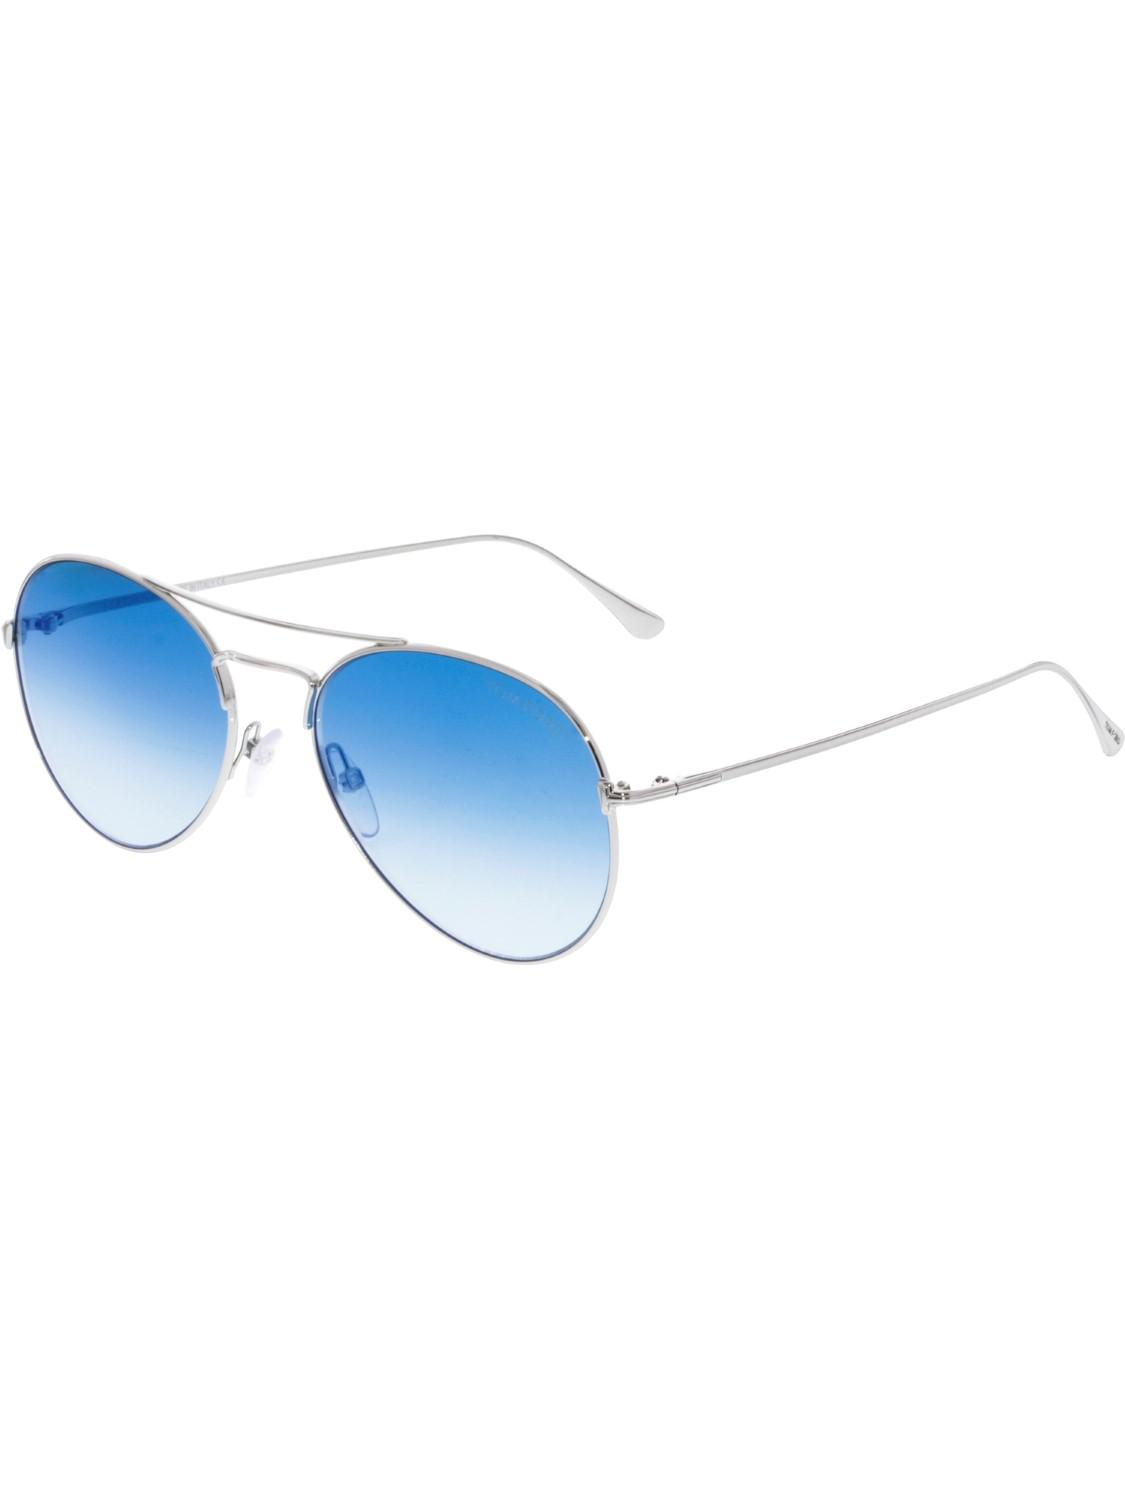 91c2fac432a Lyst - Tom Ford Gradient Ace-02 Ft0551-18x-55 Aviator Sunglasses in ...